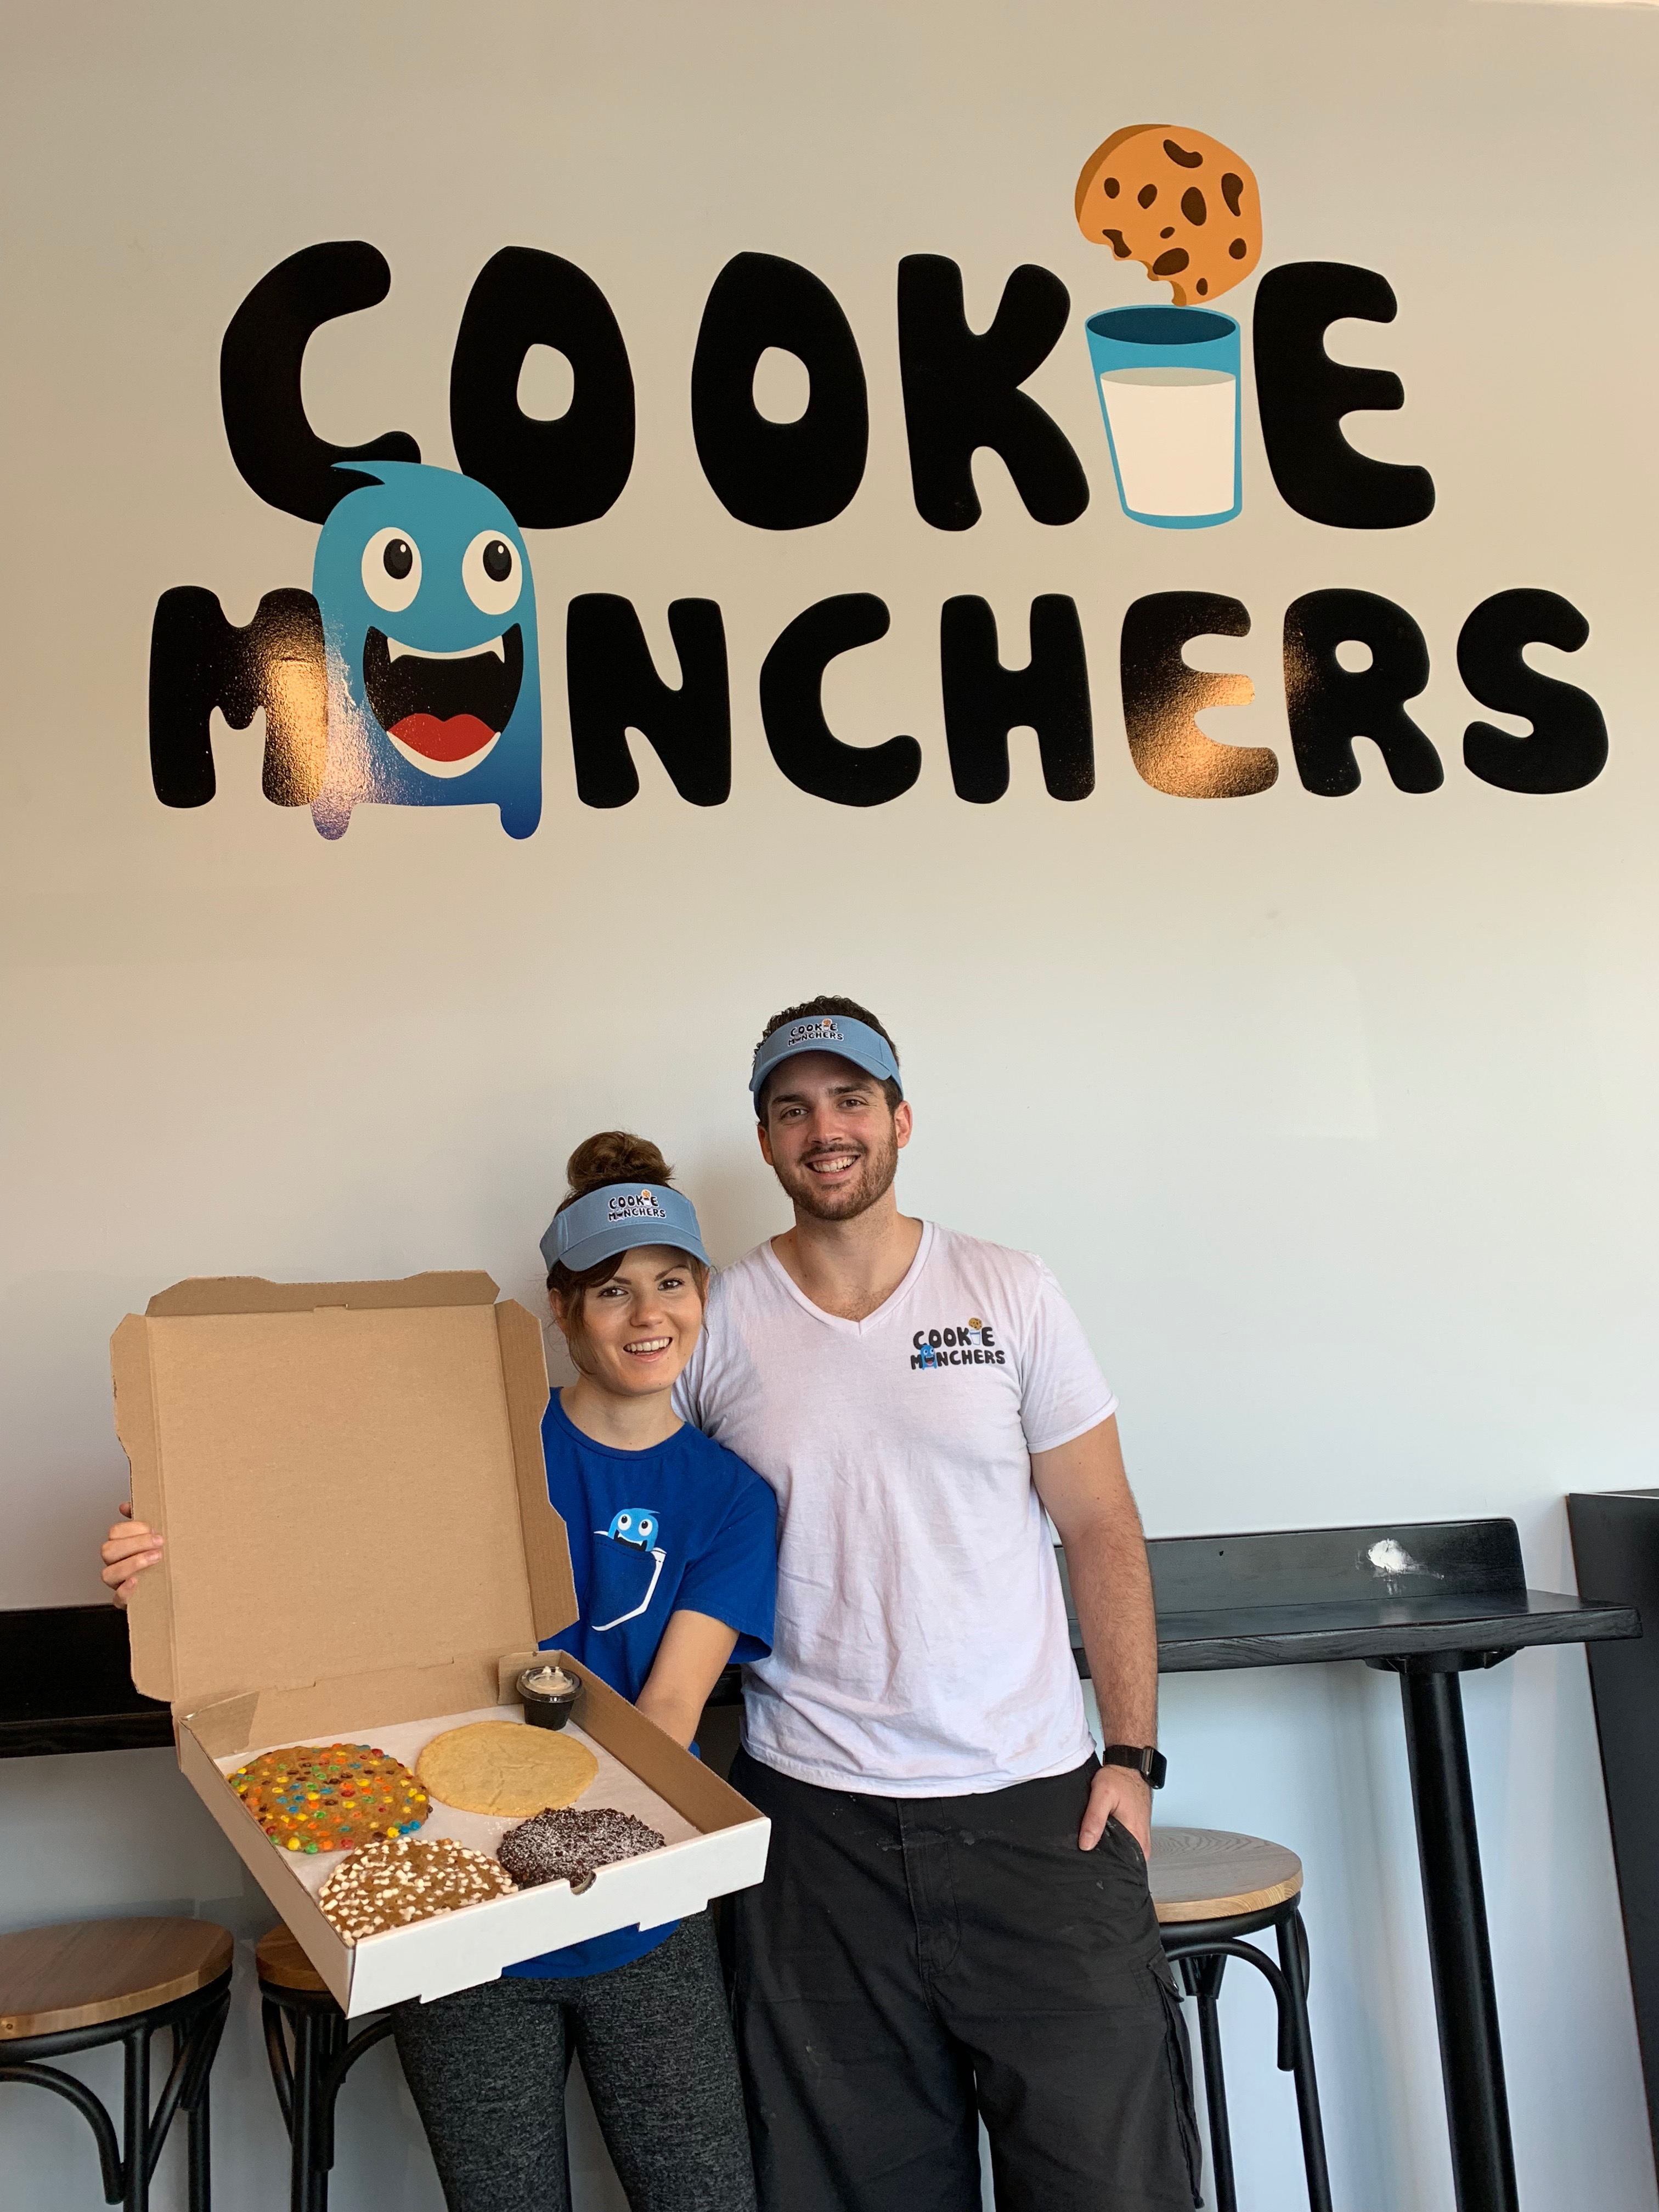 Cookie Munchers debuts larger-than-your-face cookies in Tampa